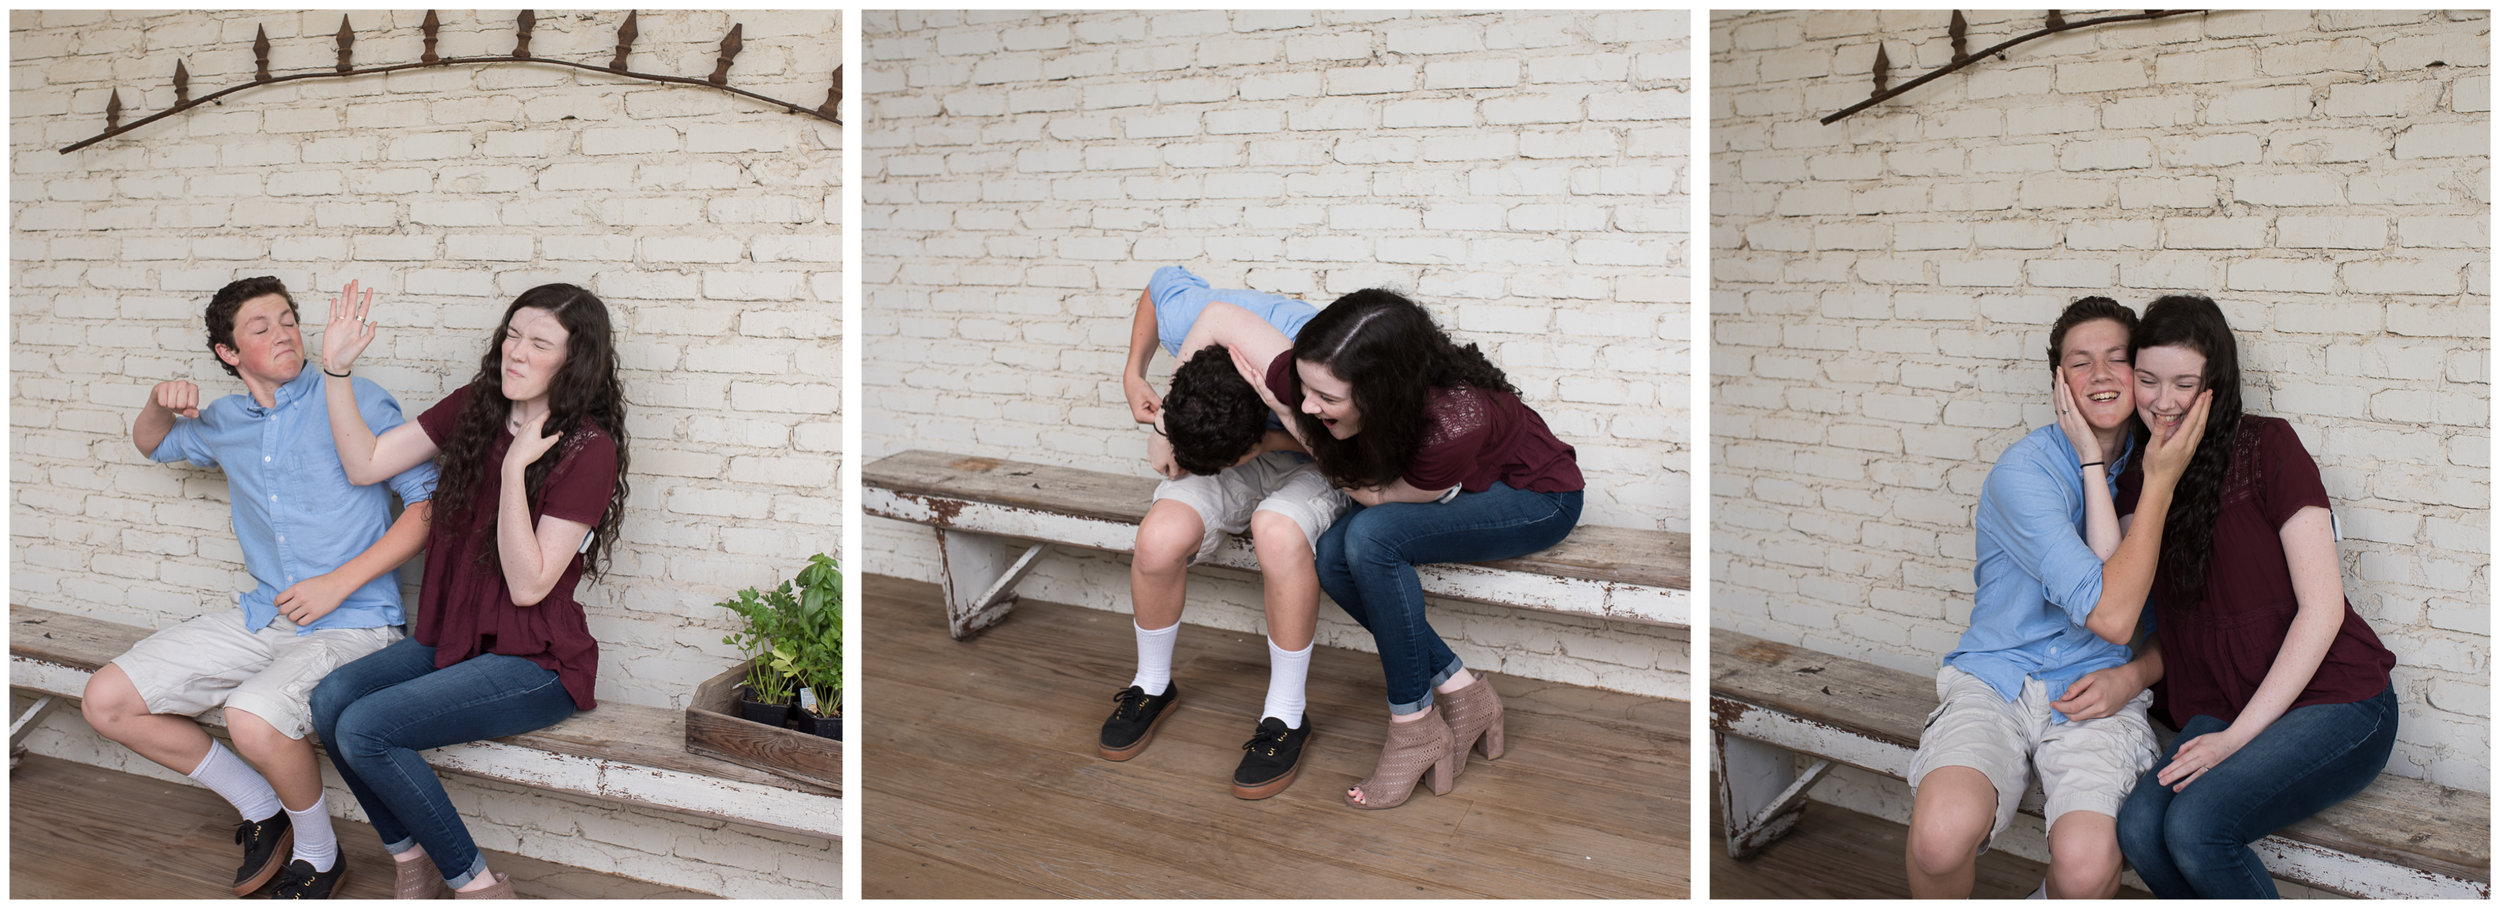 It started off a little tense, but we got a loving sibling portrait in the end.